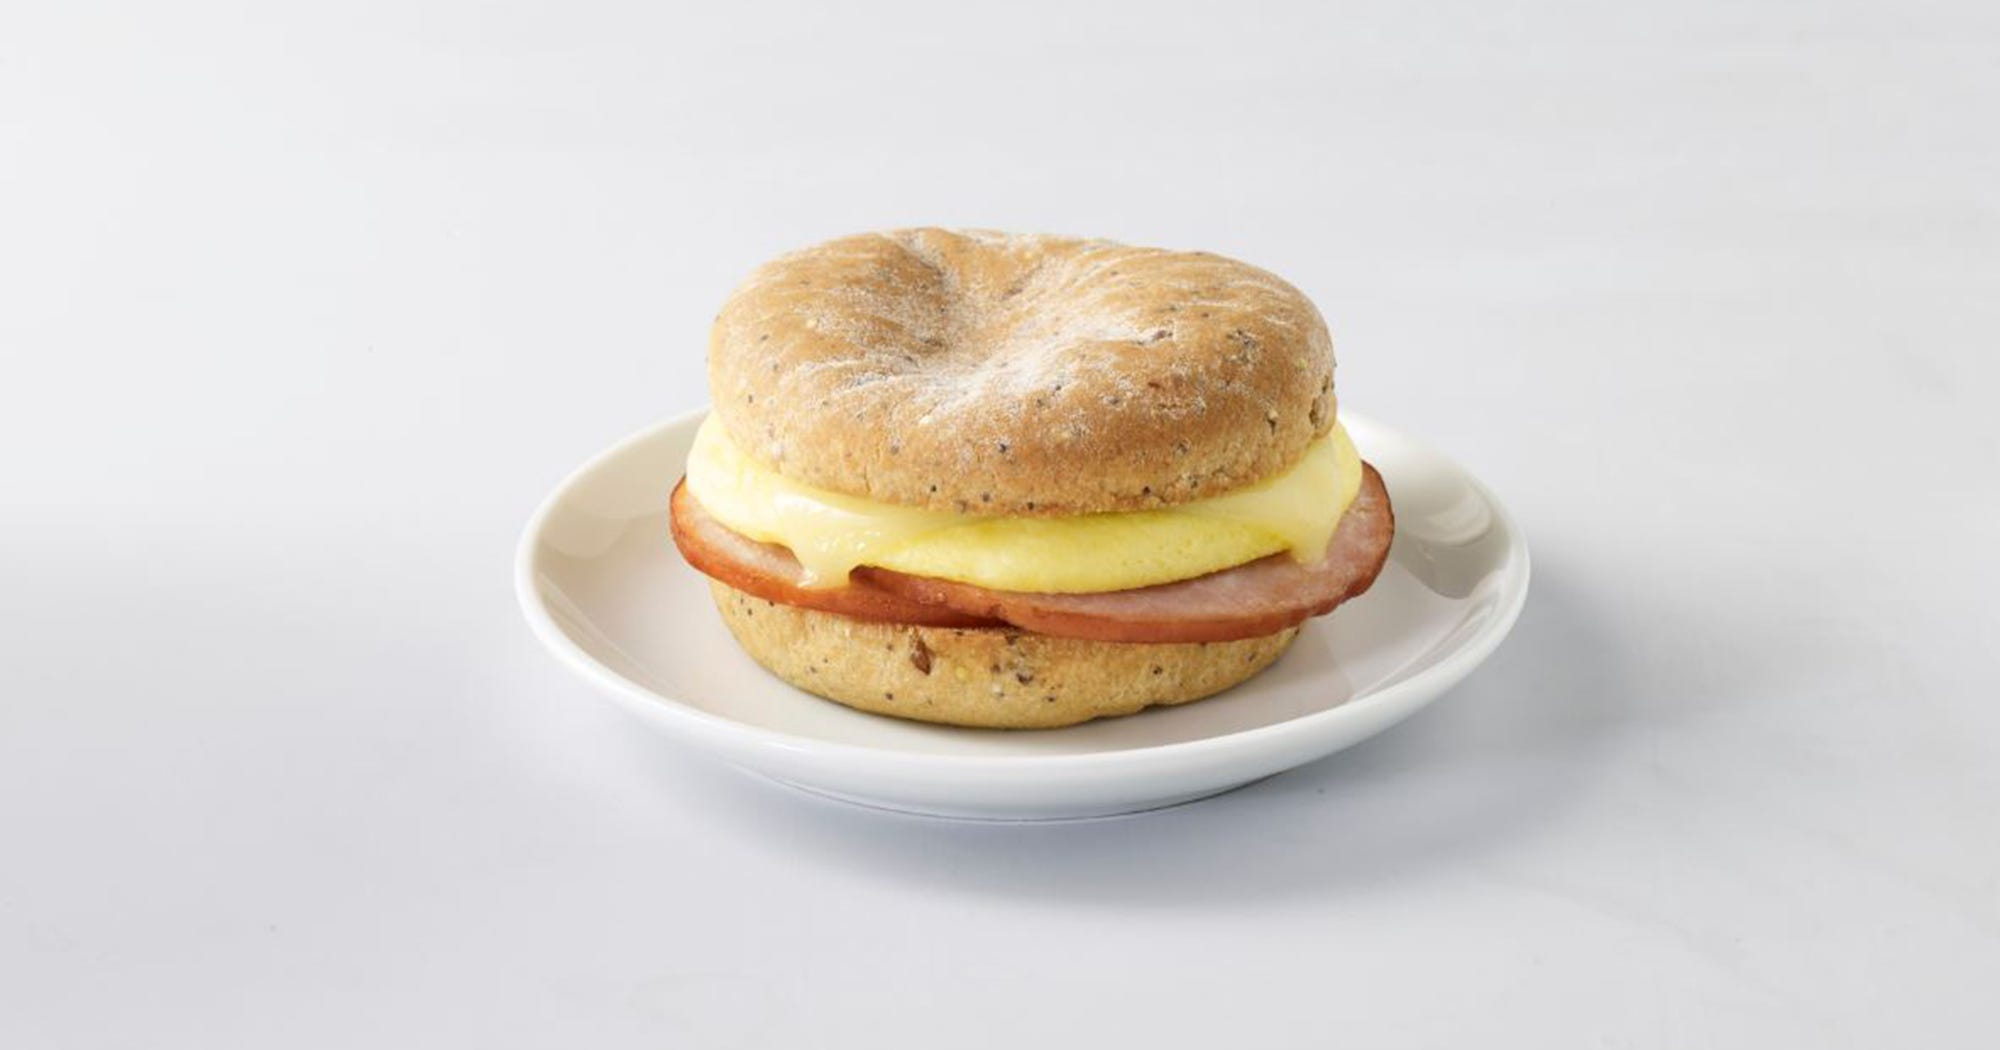 Starbucks Just Dropped Its First-Ever Gluten-Free Breakfast Sandwich